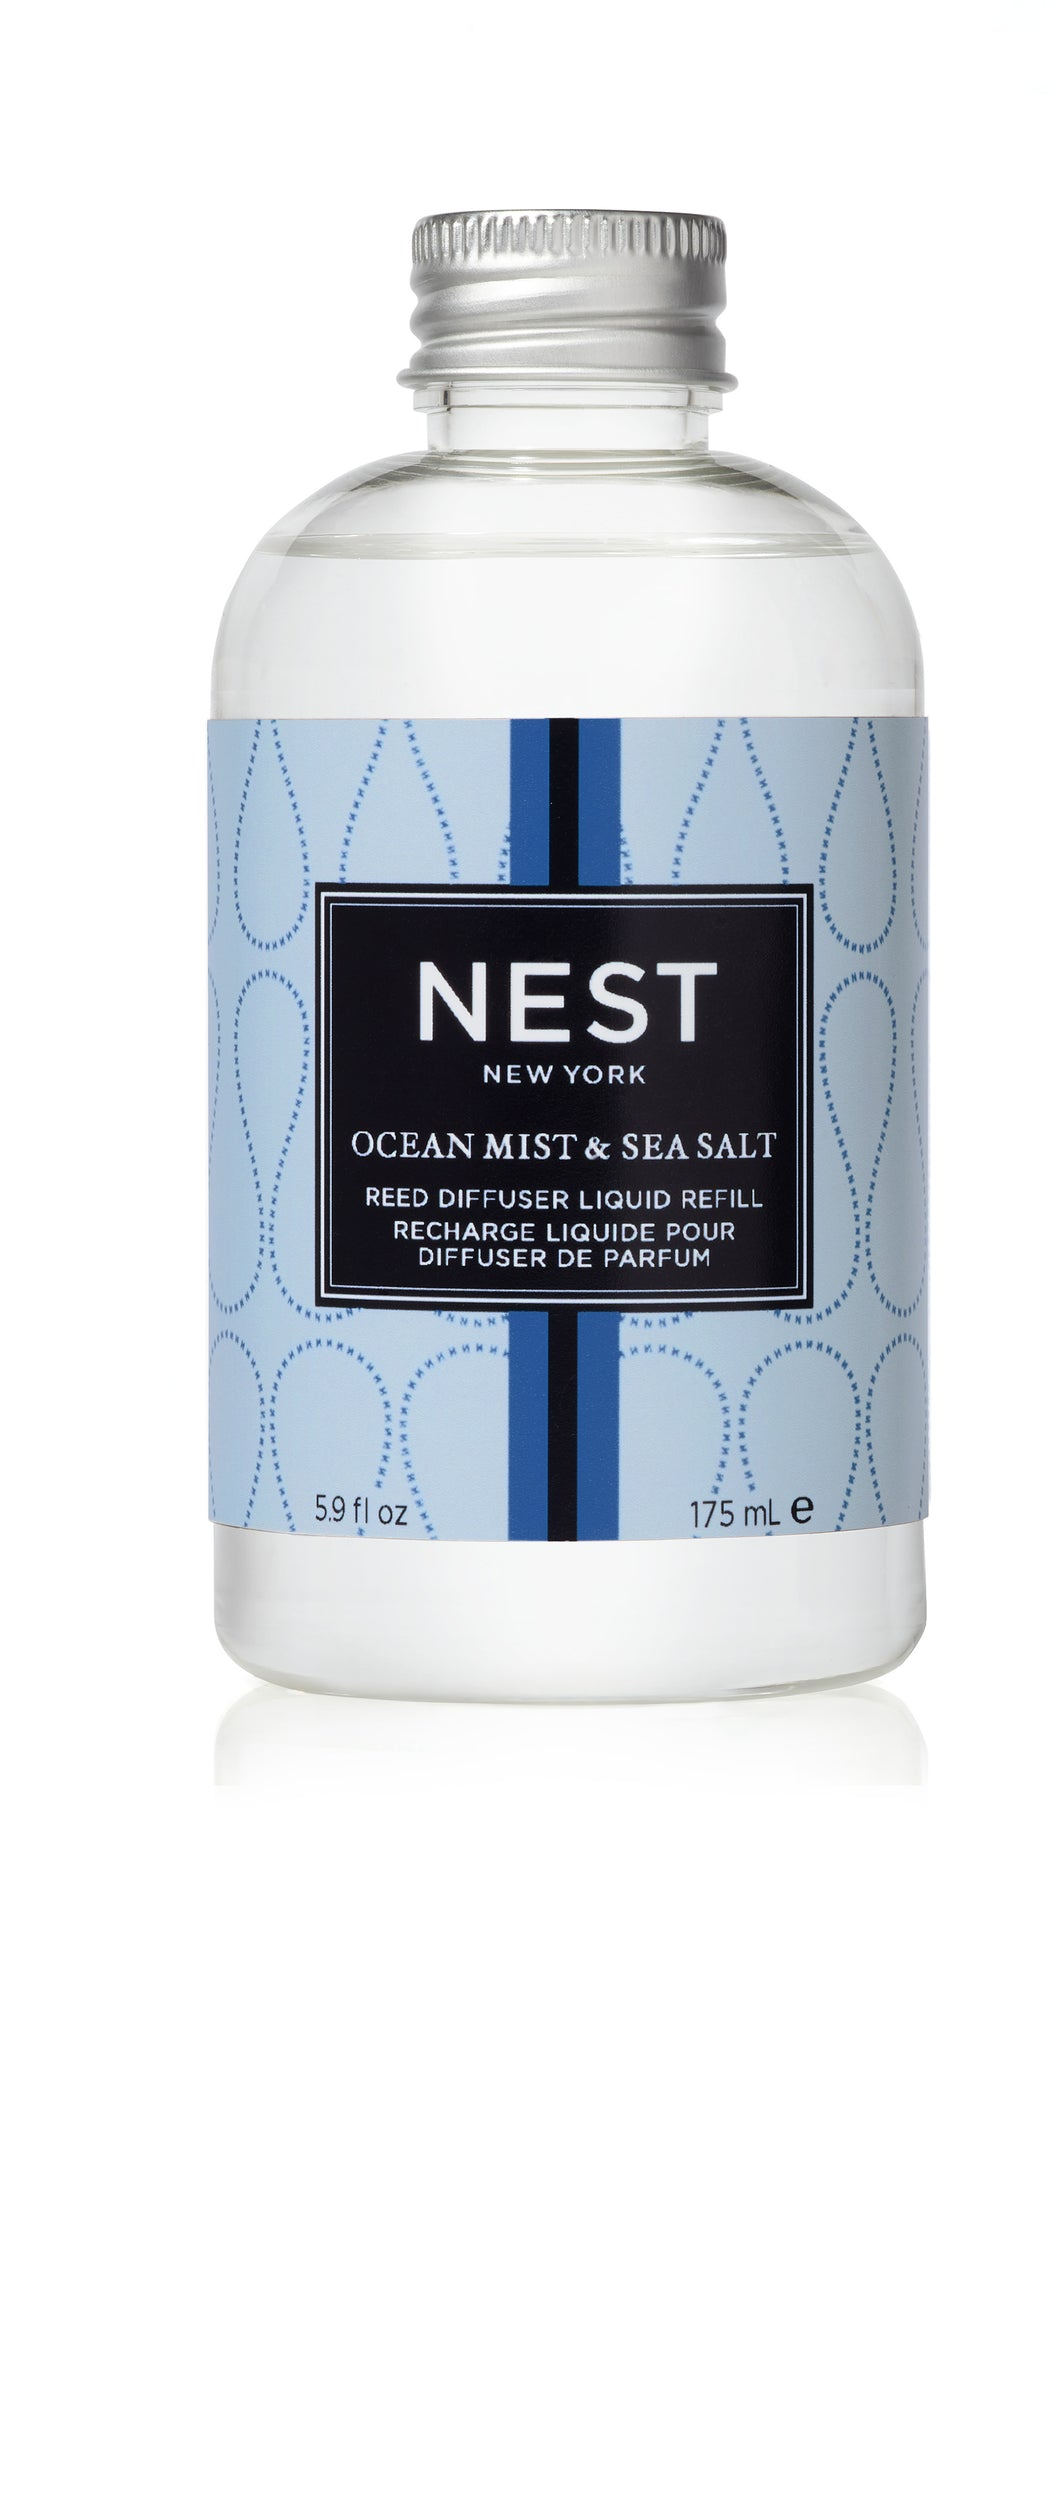 NEST New York Reed Diffuser Refill - Ocean Mist & Sea Salt